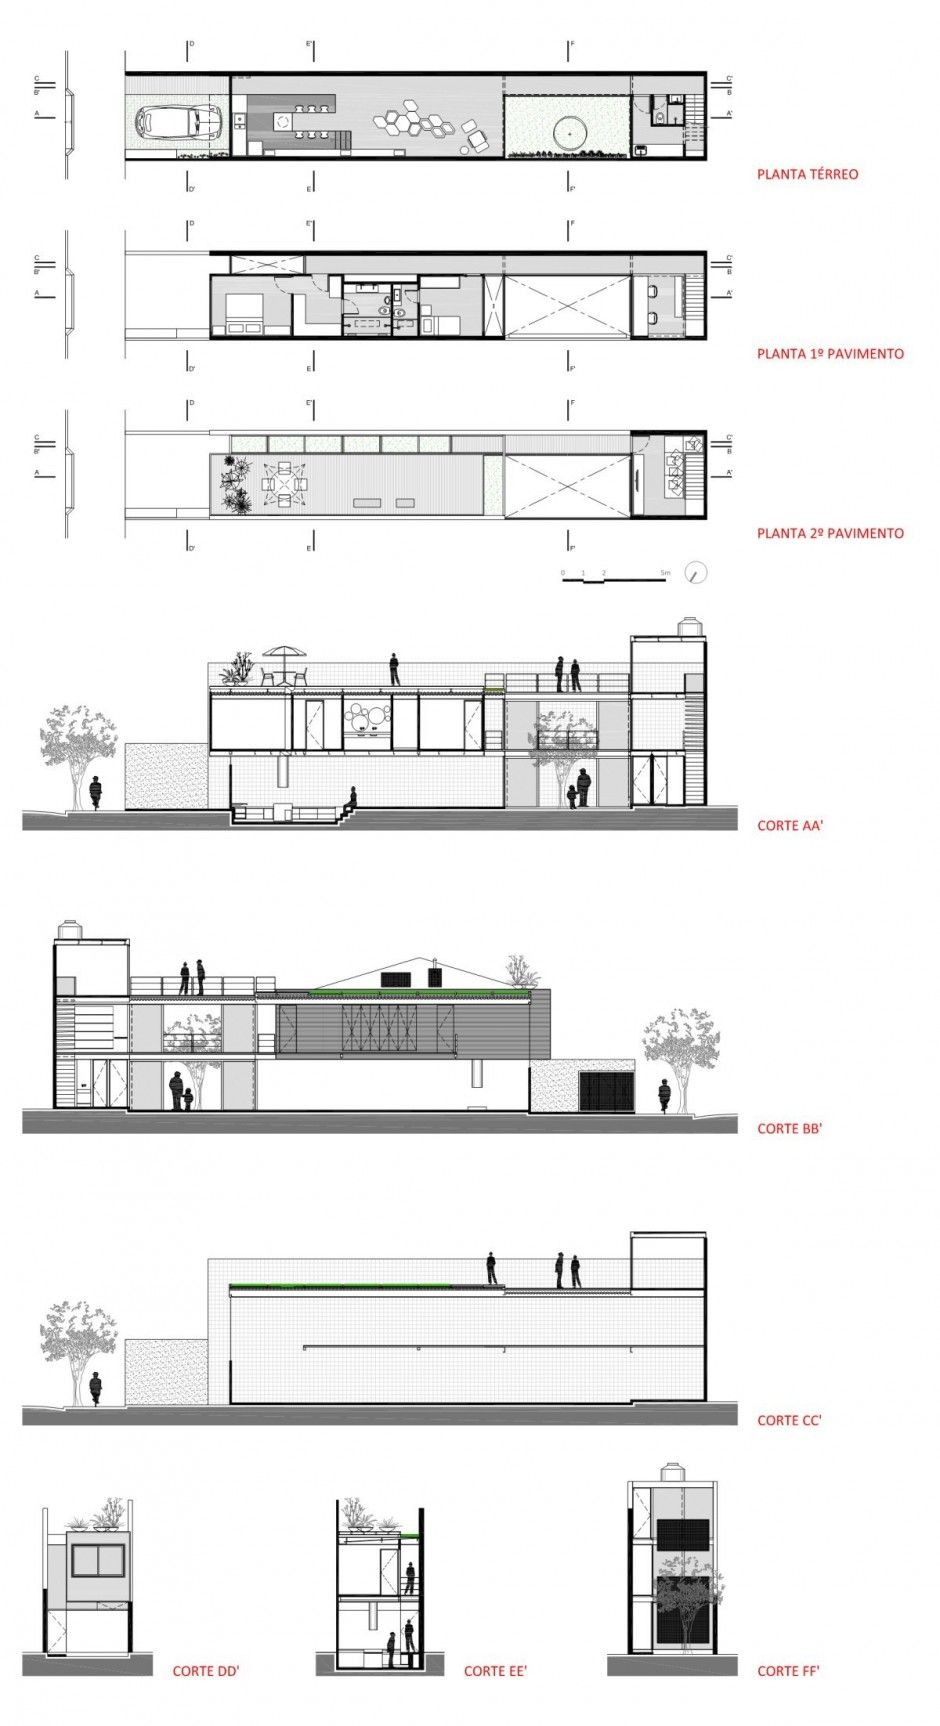 4x30 House By CR2 Arquitetos FGMF Architects Architecture DetailsArchitecture Interior DesignArchitecture